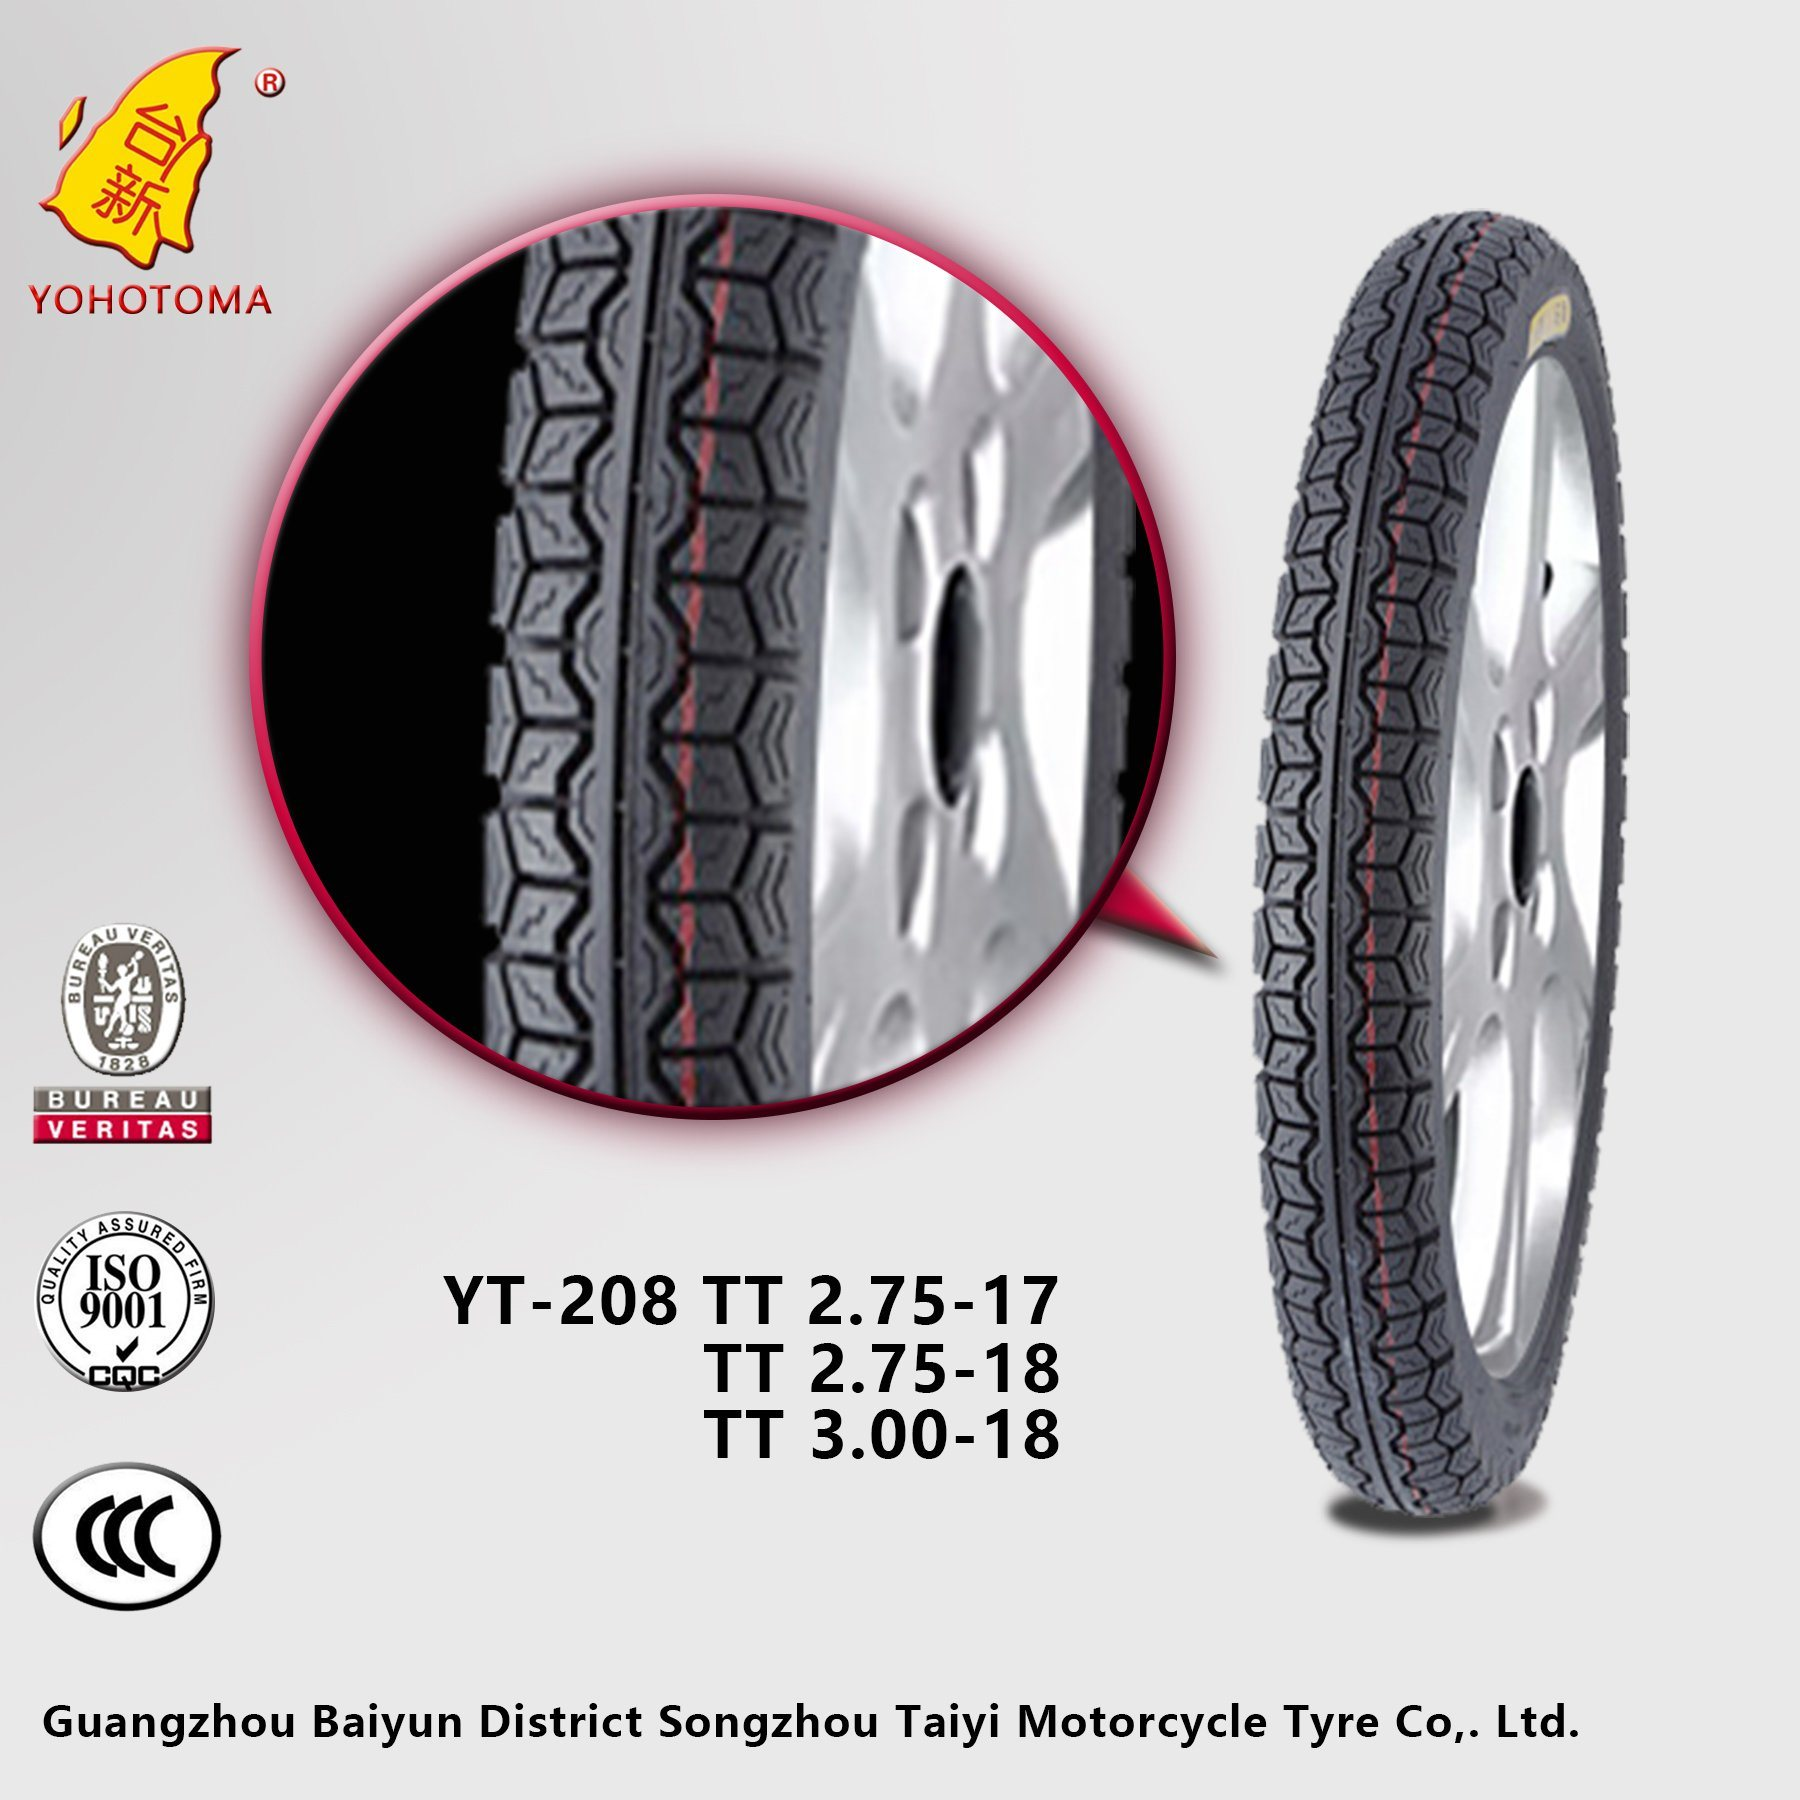 Cheap Price China Motorcycle Tyre YT-208 TT 3.00-18